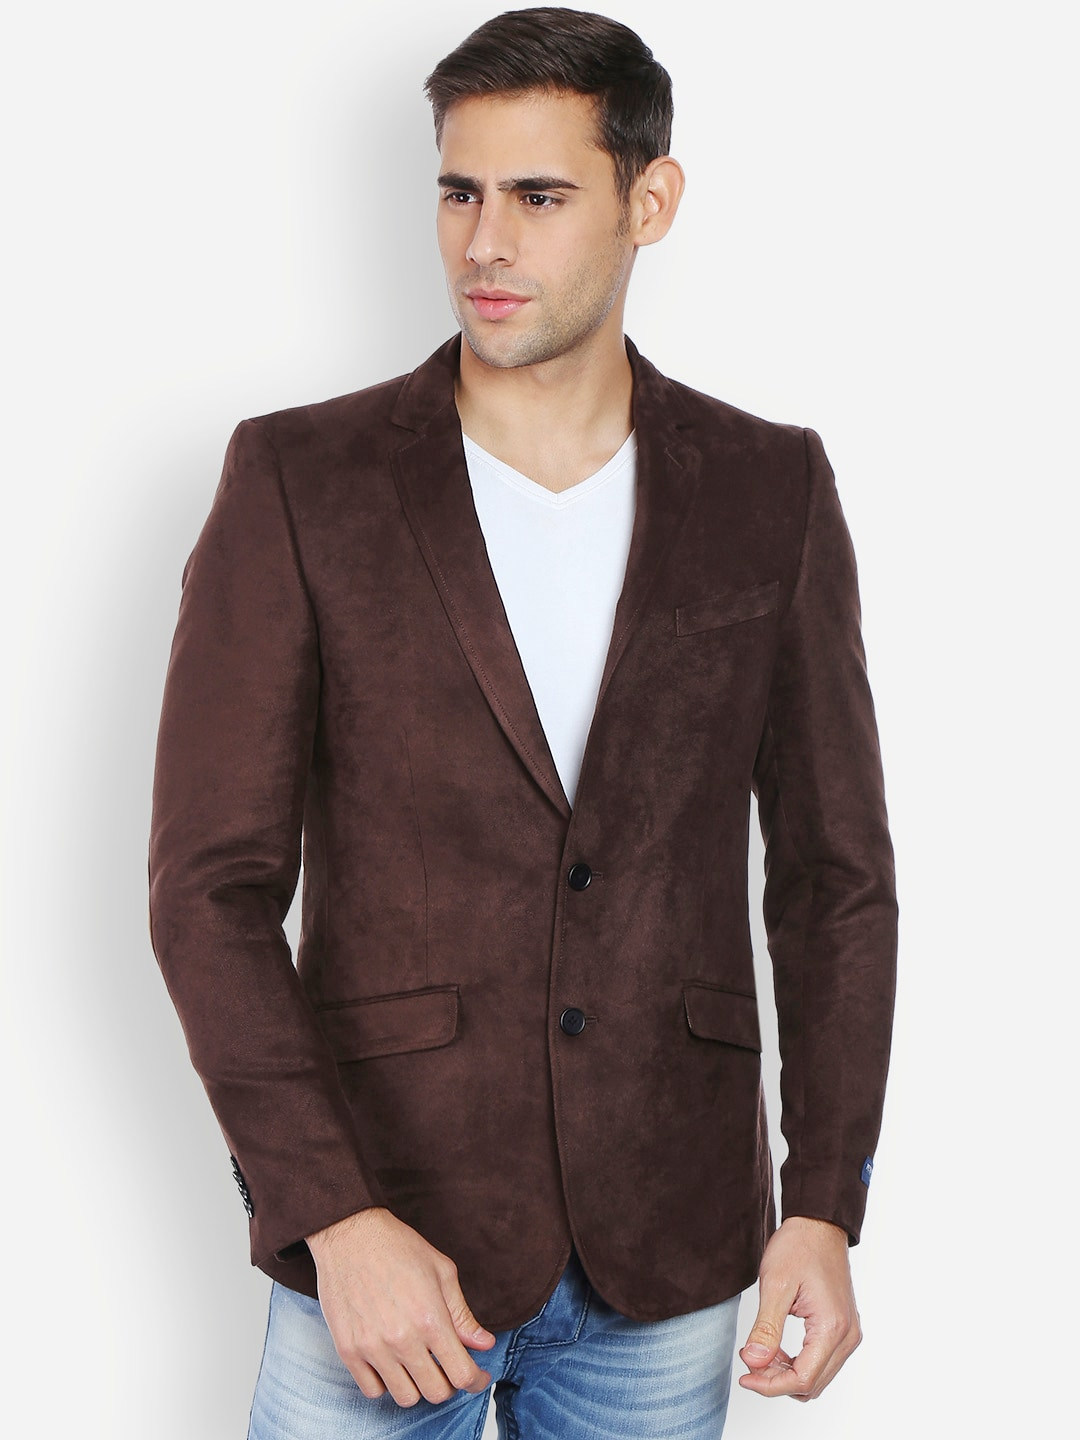 e2b04c65c3d9 Peter england pbz51506921 Suits And Blazers - Best Price in India ...